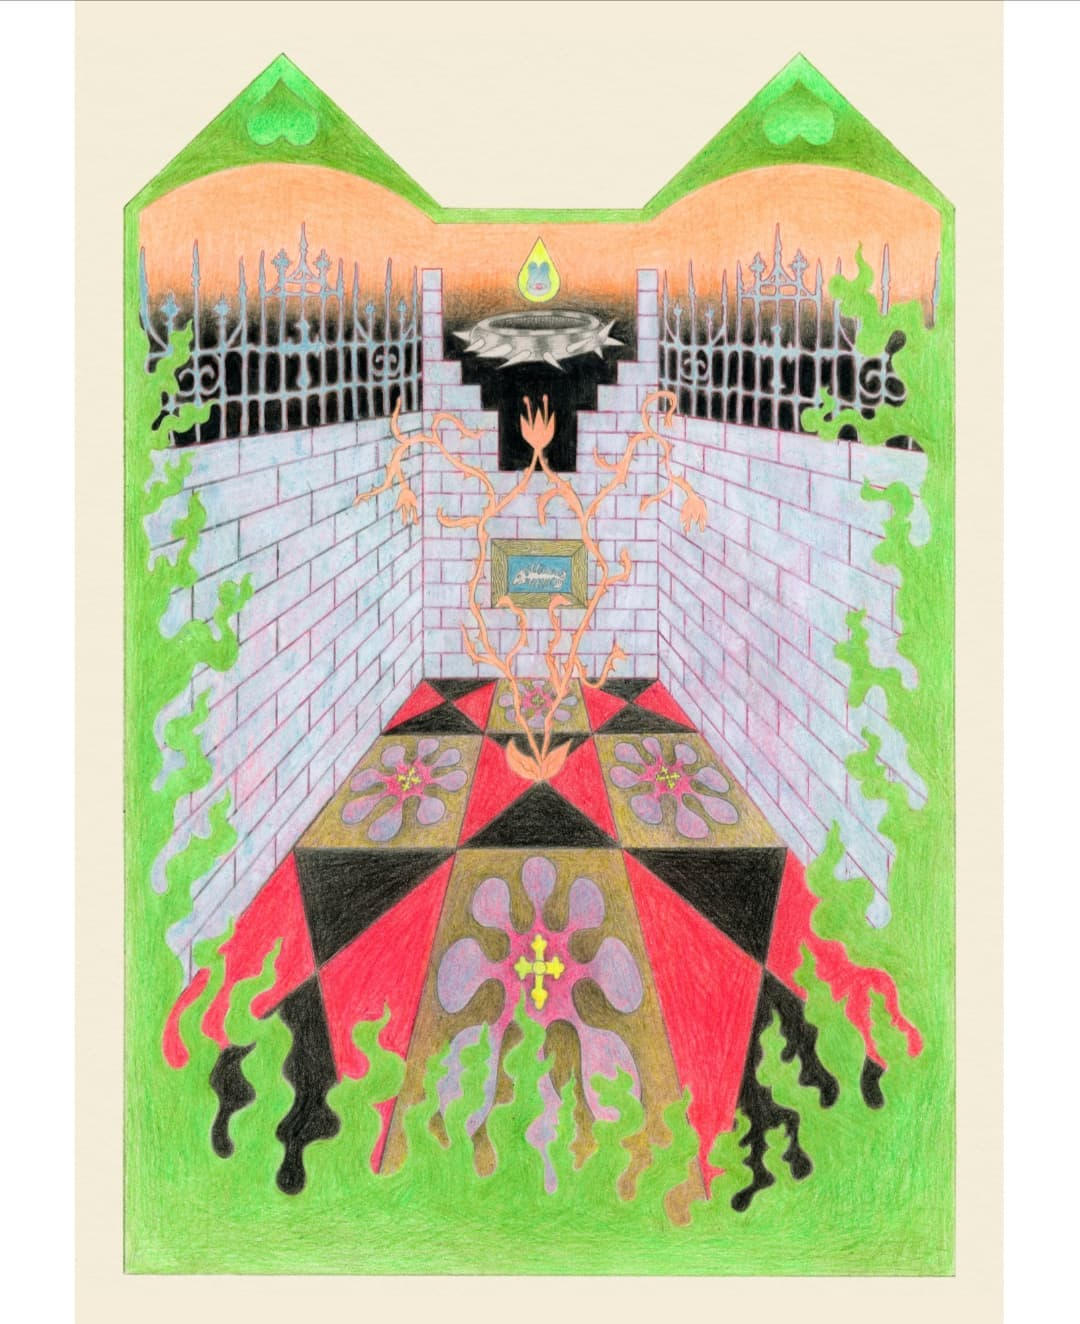 Gitte Maria Möller's Work Infested With Heavy Symbolism 9